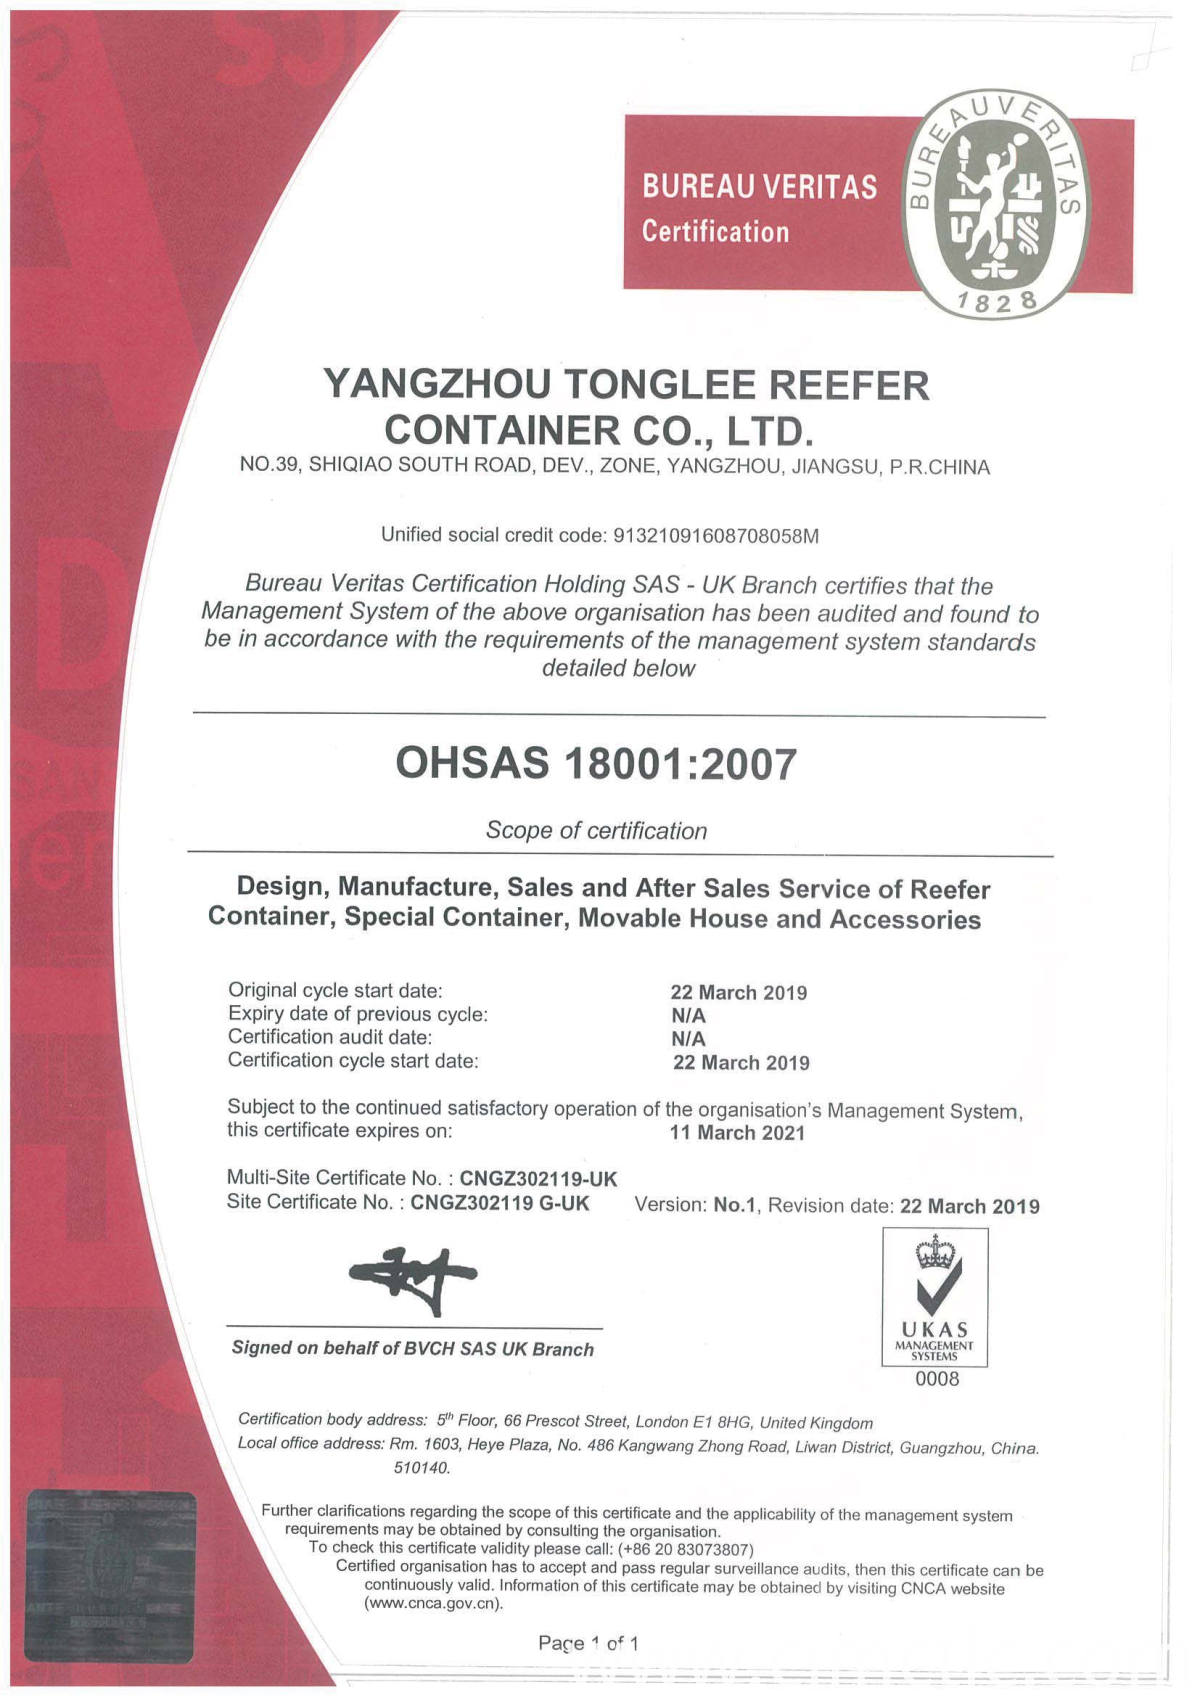 OSHAS 18001 certification for Bulk Fuel Tank Container